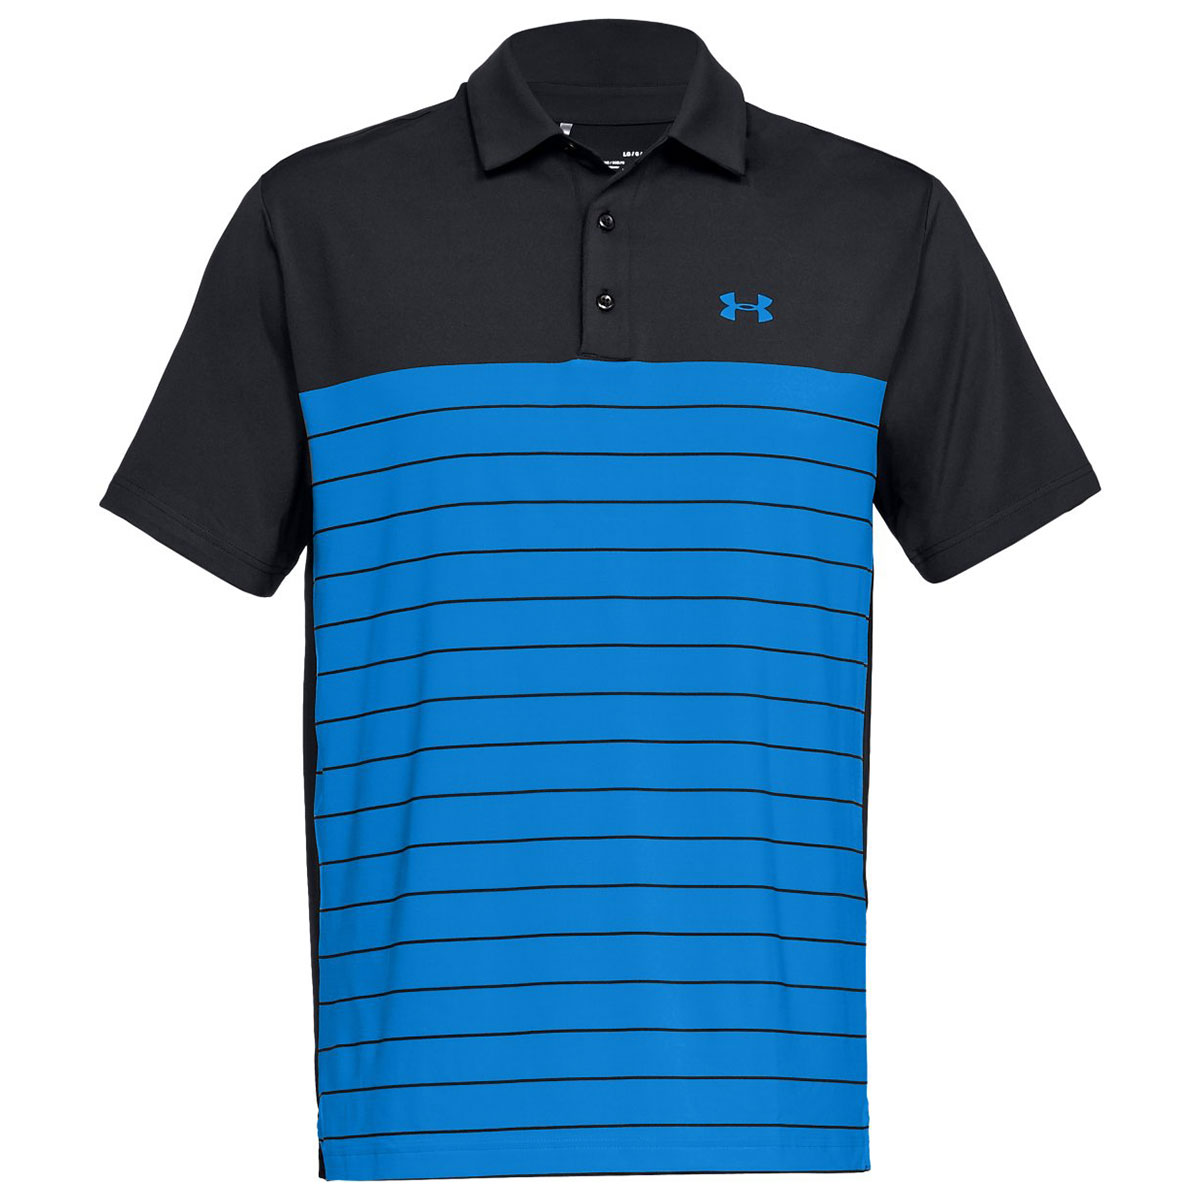 Under-Armour-Mens-UA-Playoff-Performance-Golf-Polo-Shirt-33-OFF-RRP thumbnail 25